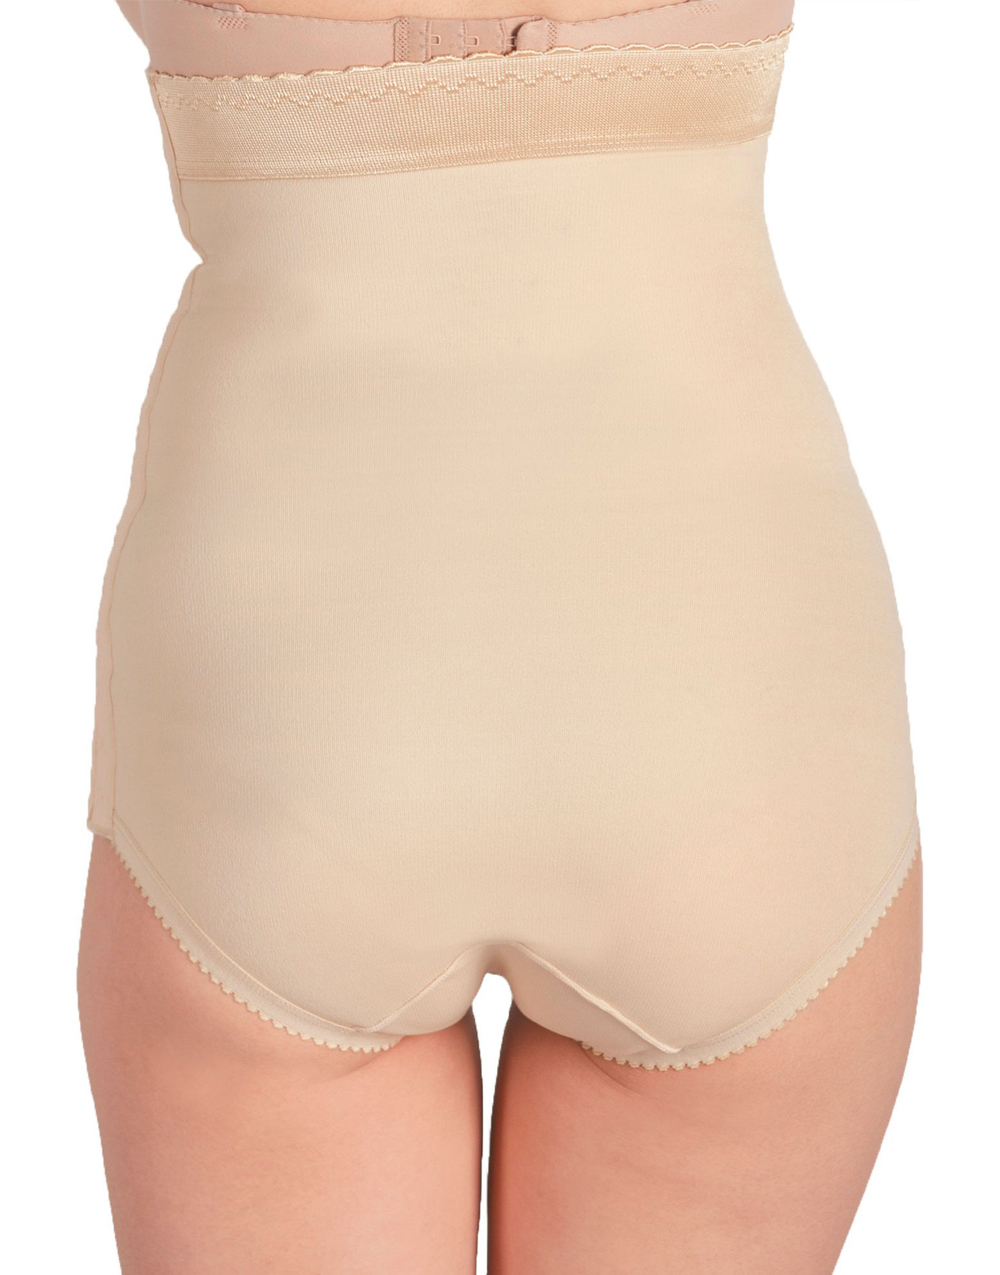 Postpartum Ultra Bikini in Nude by Wink Shapewear | XL